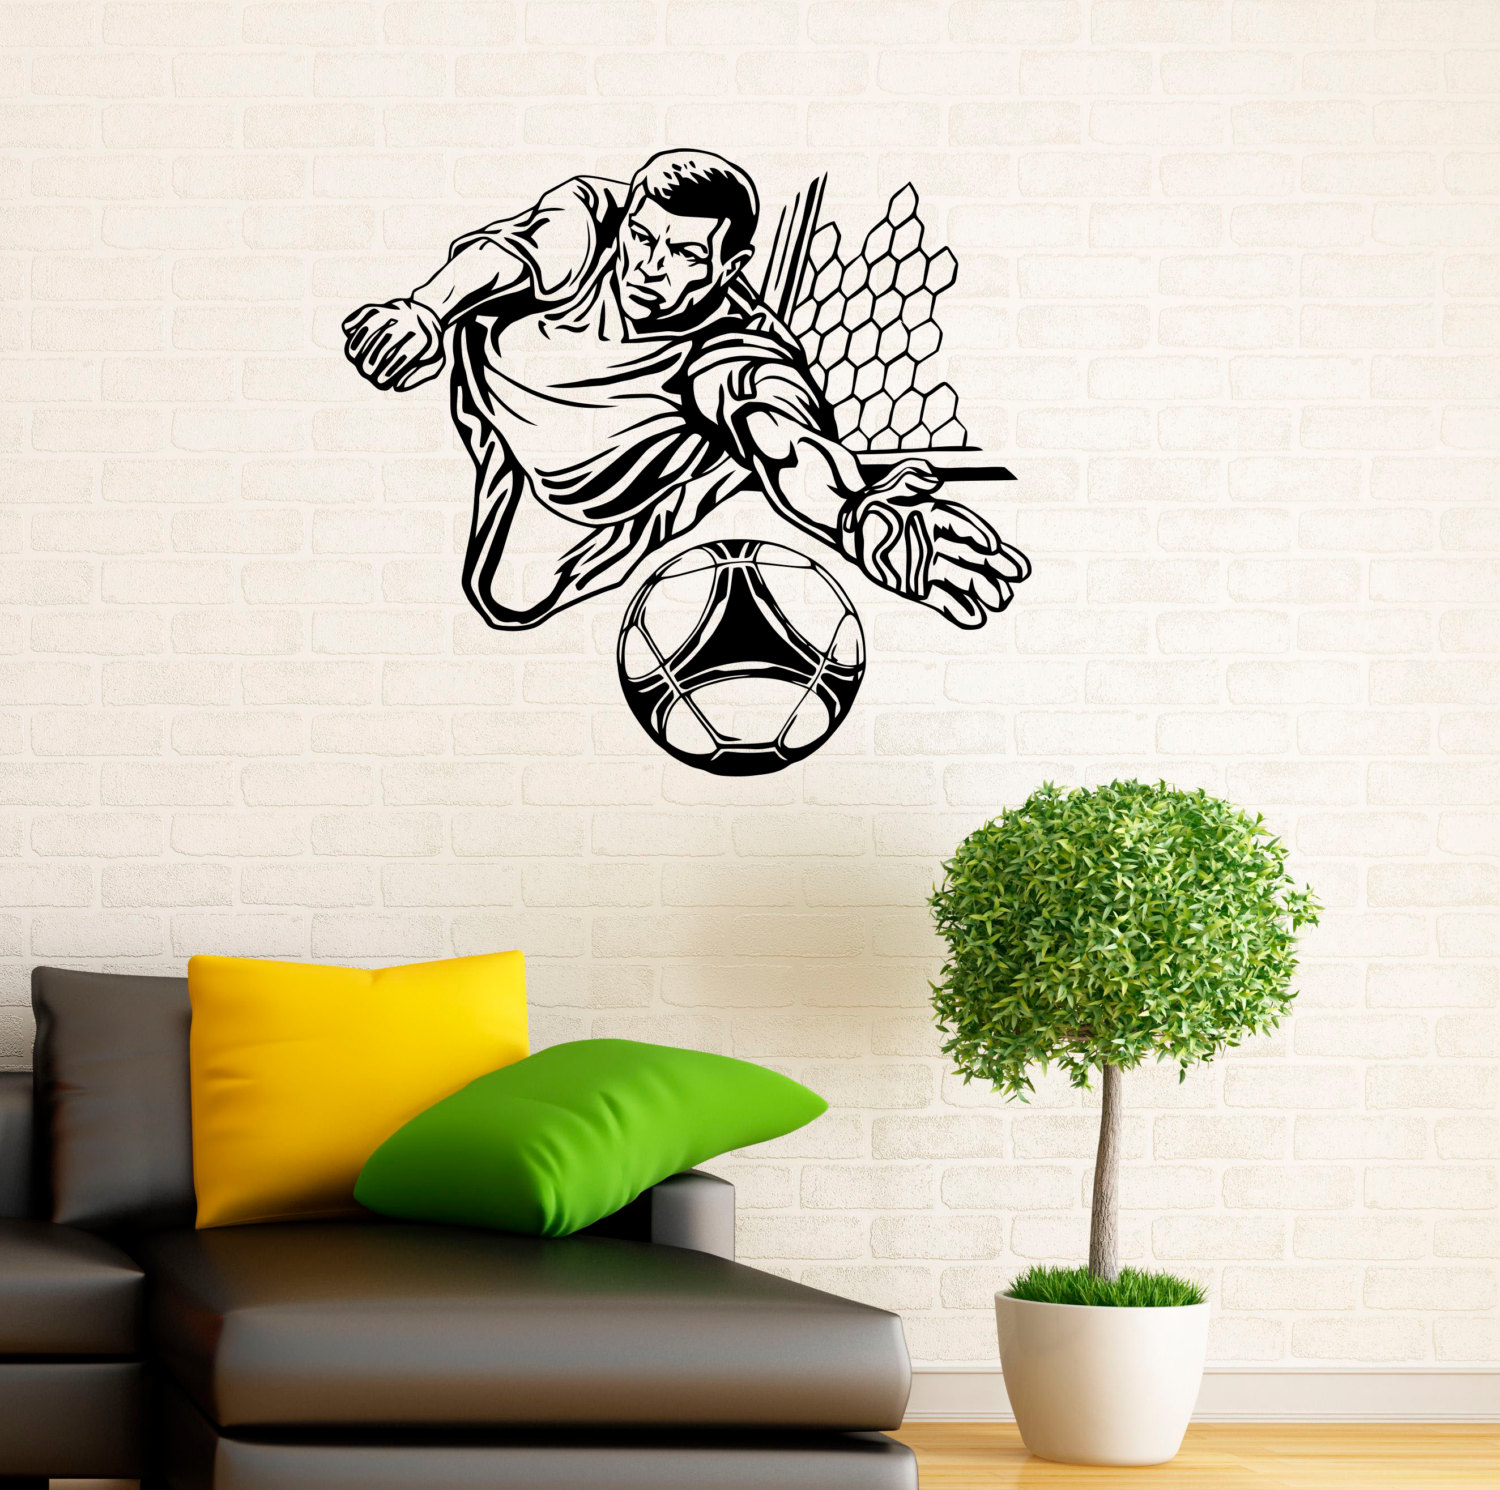 Soccer Goalkeeper Wall Decal Football Vinyl Stickers Sport